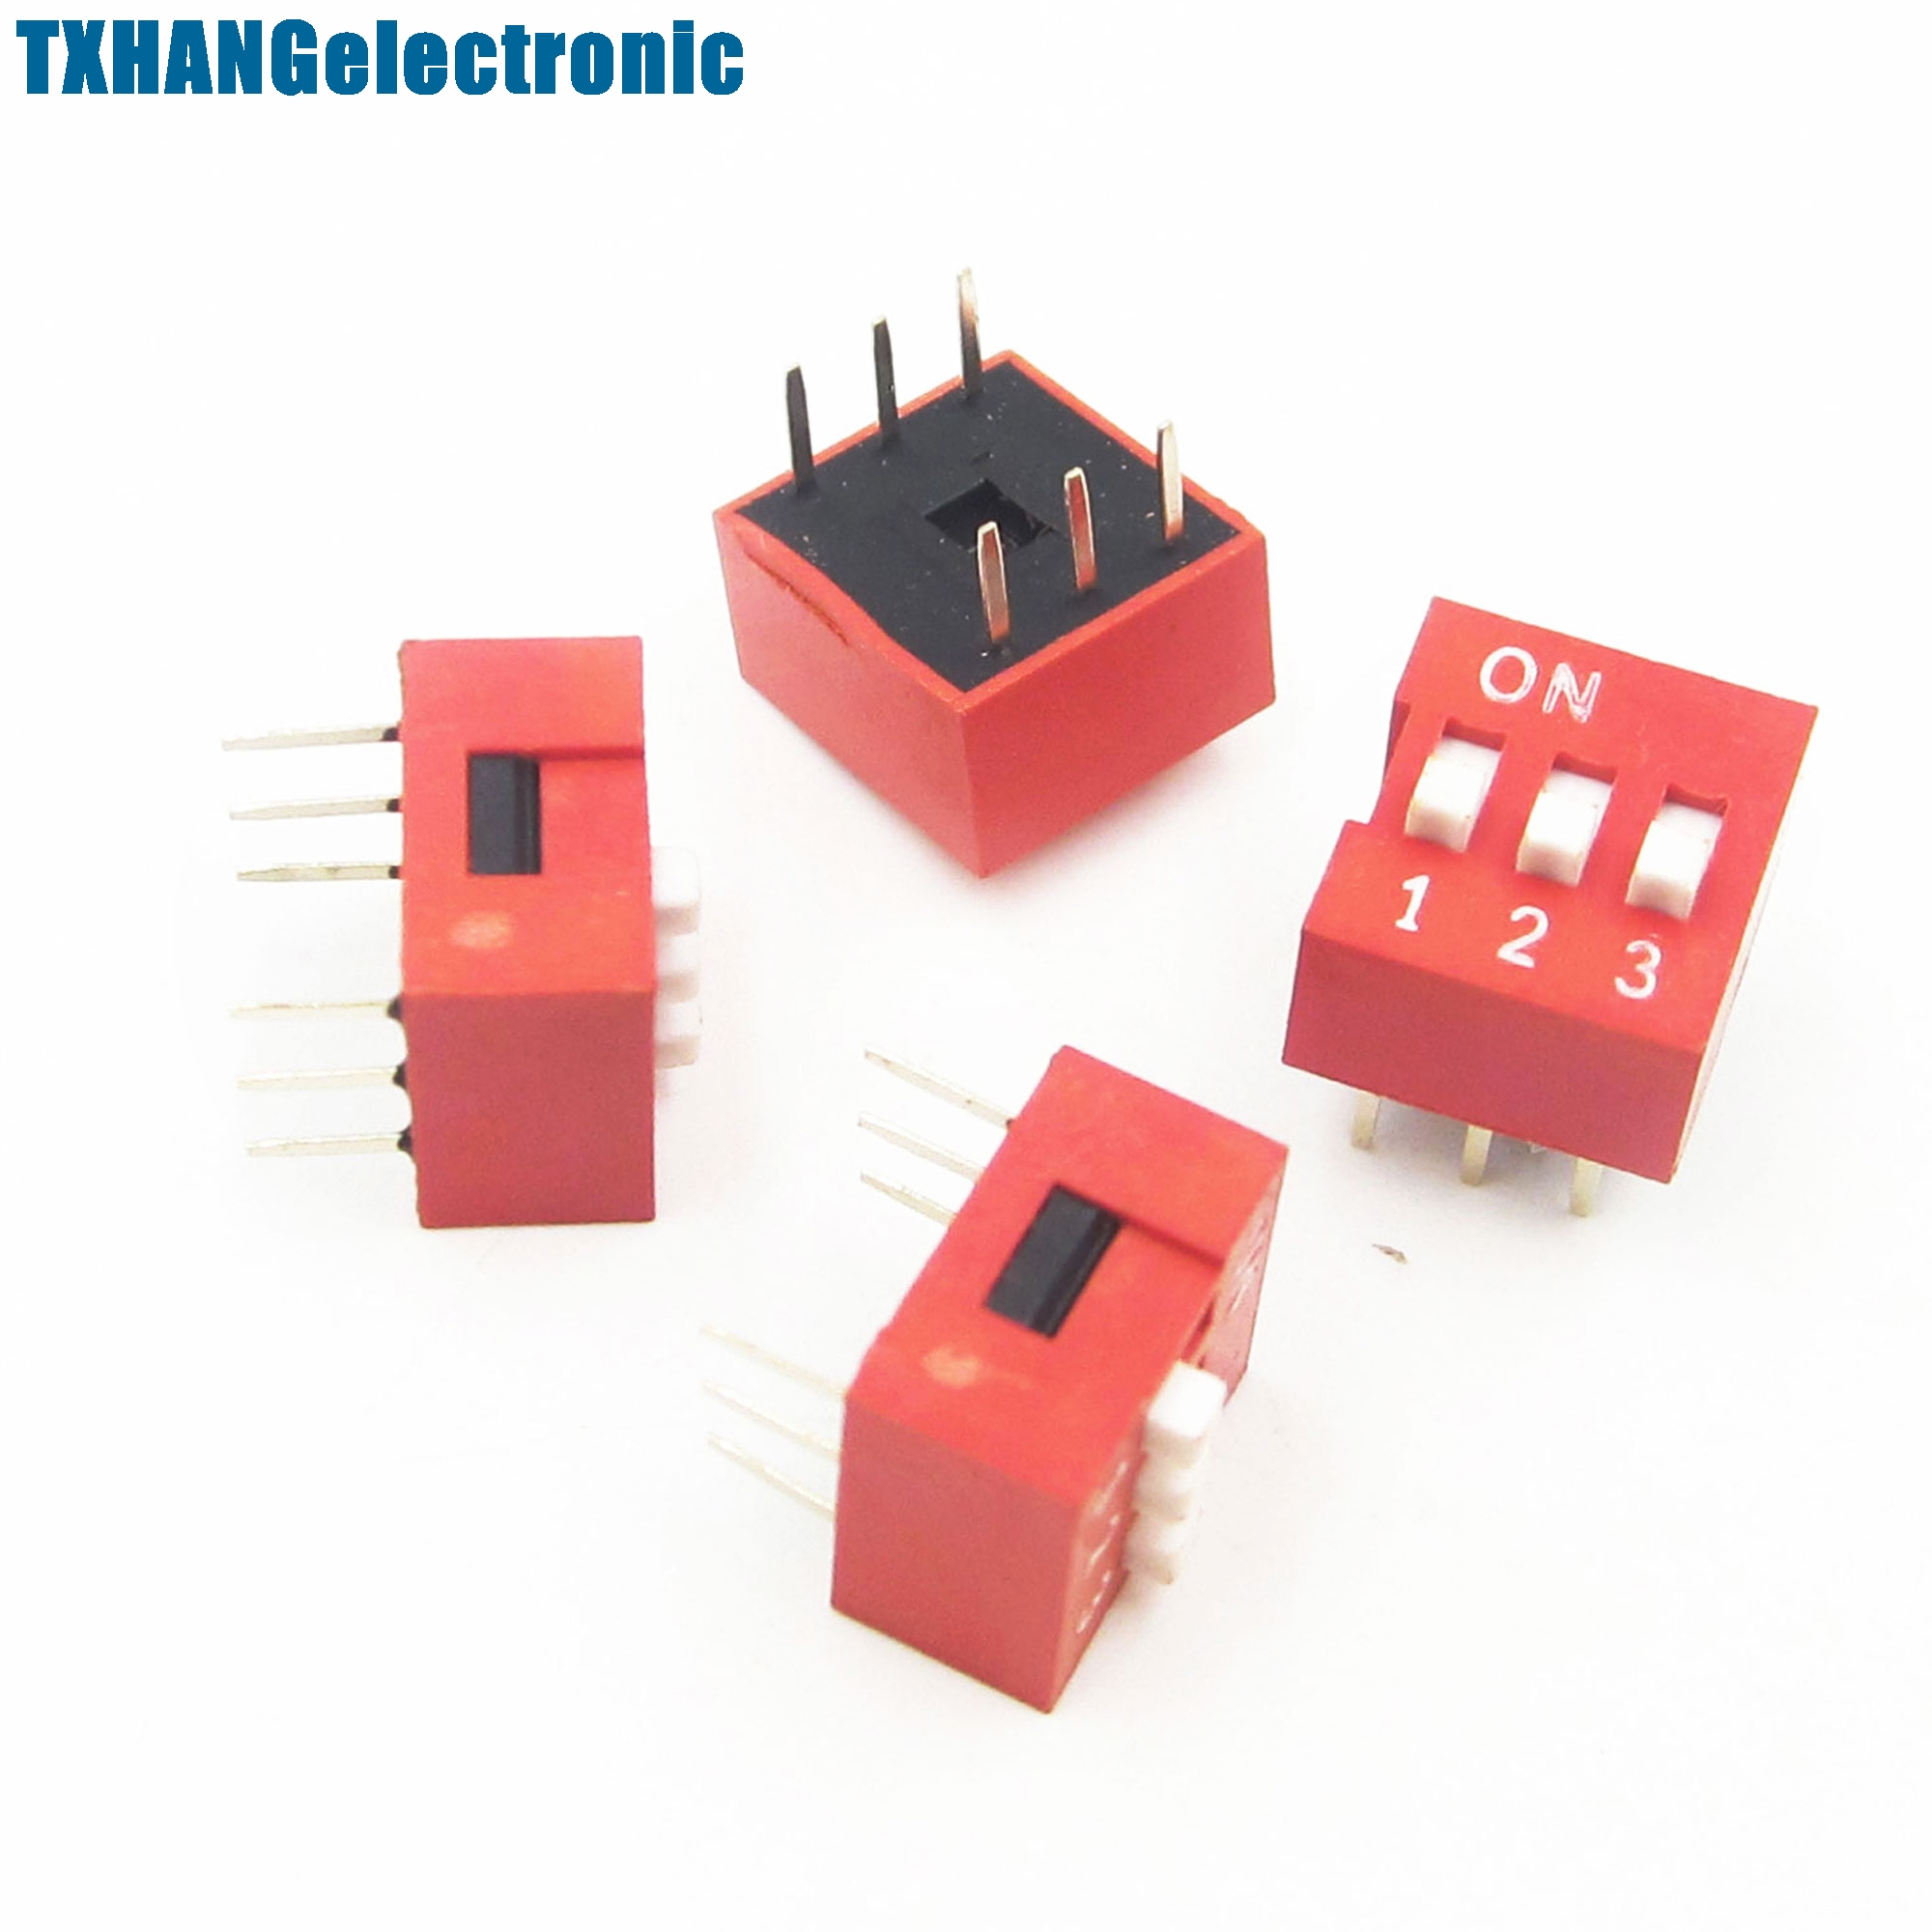 10Pcs Slide Type Switch Module 2.54mm 3 Bit 3 Position Way DIP Red ...